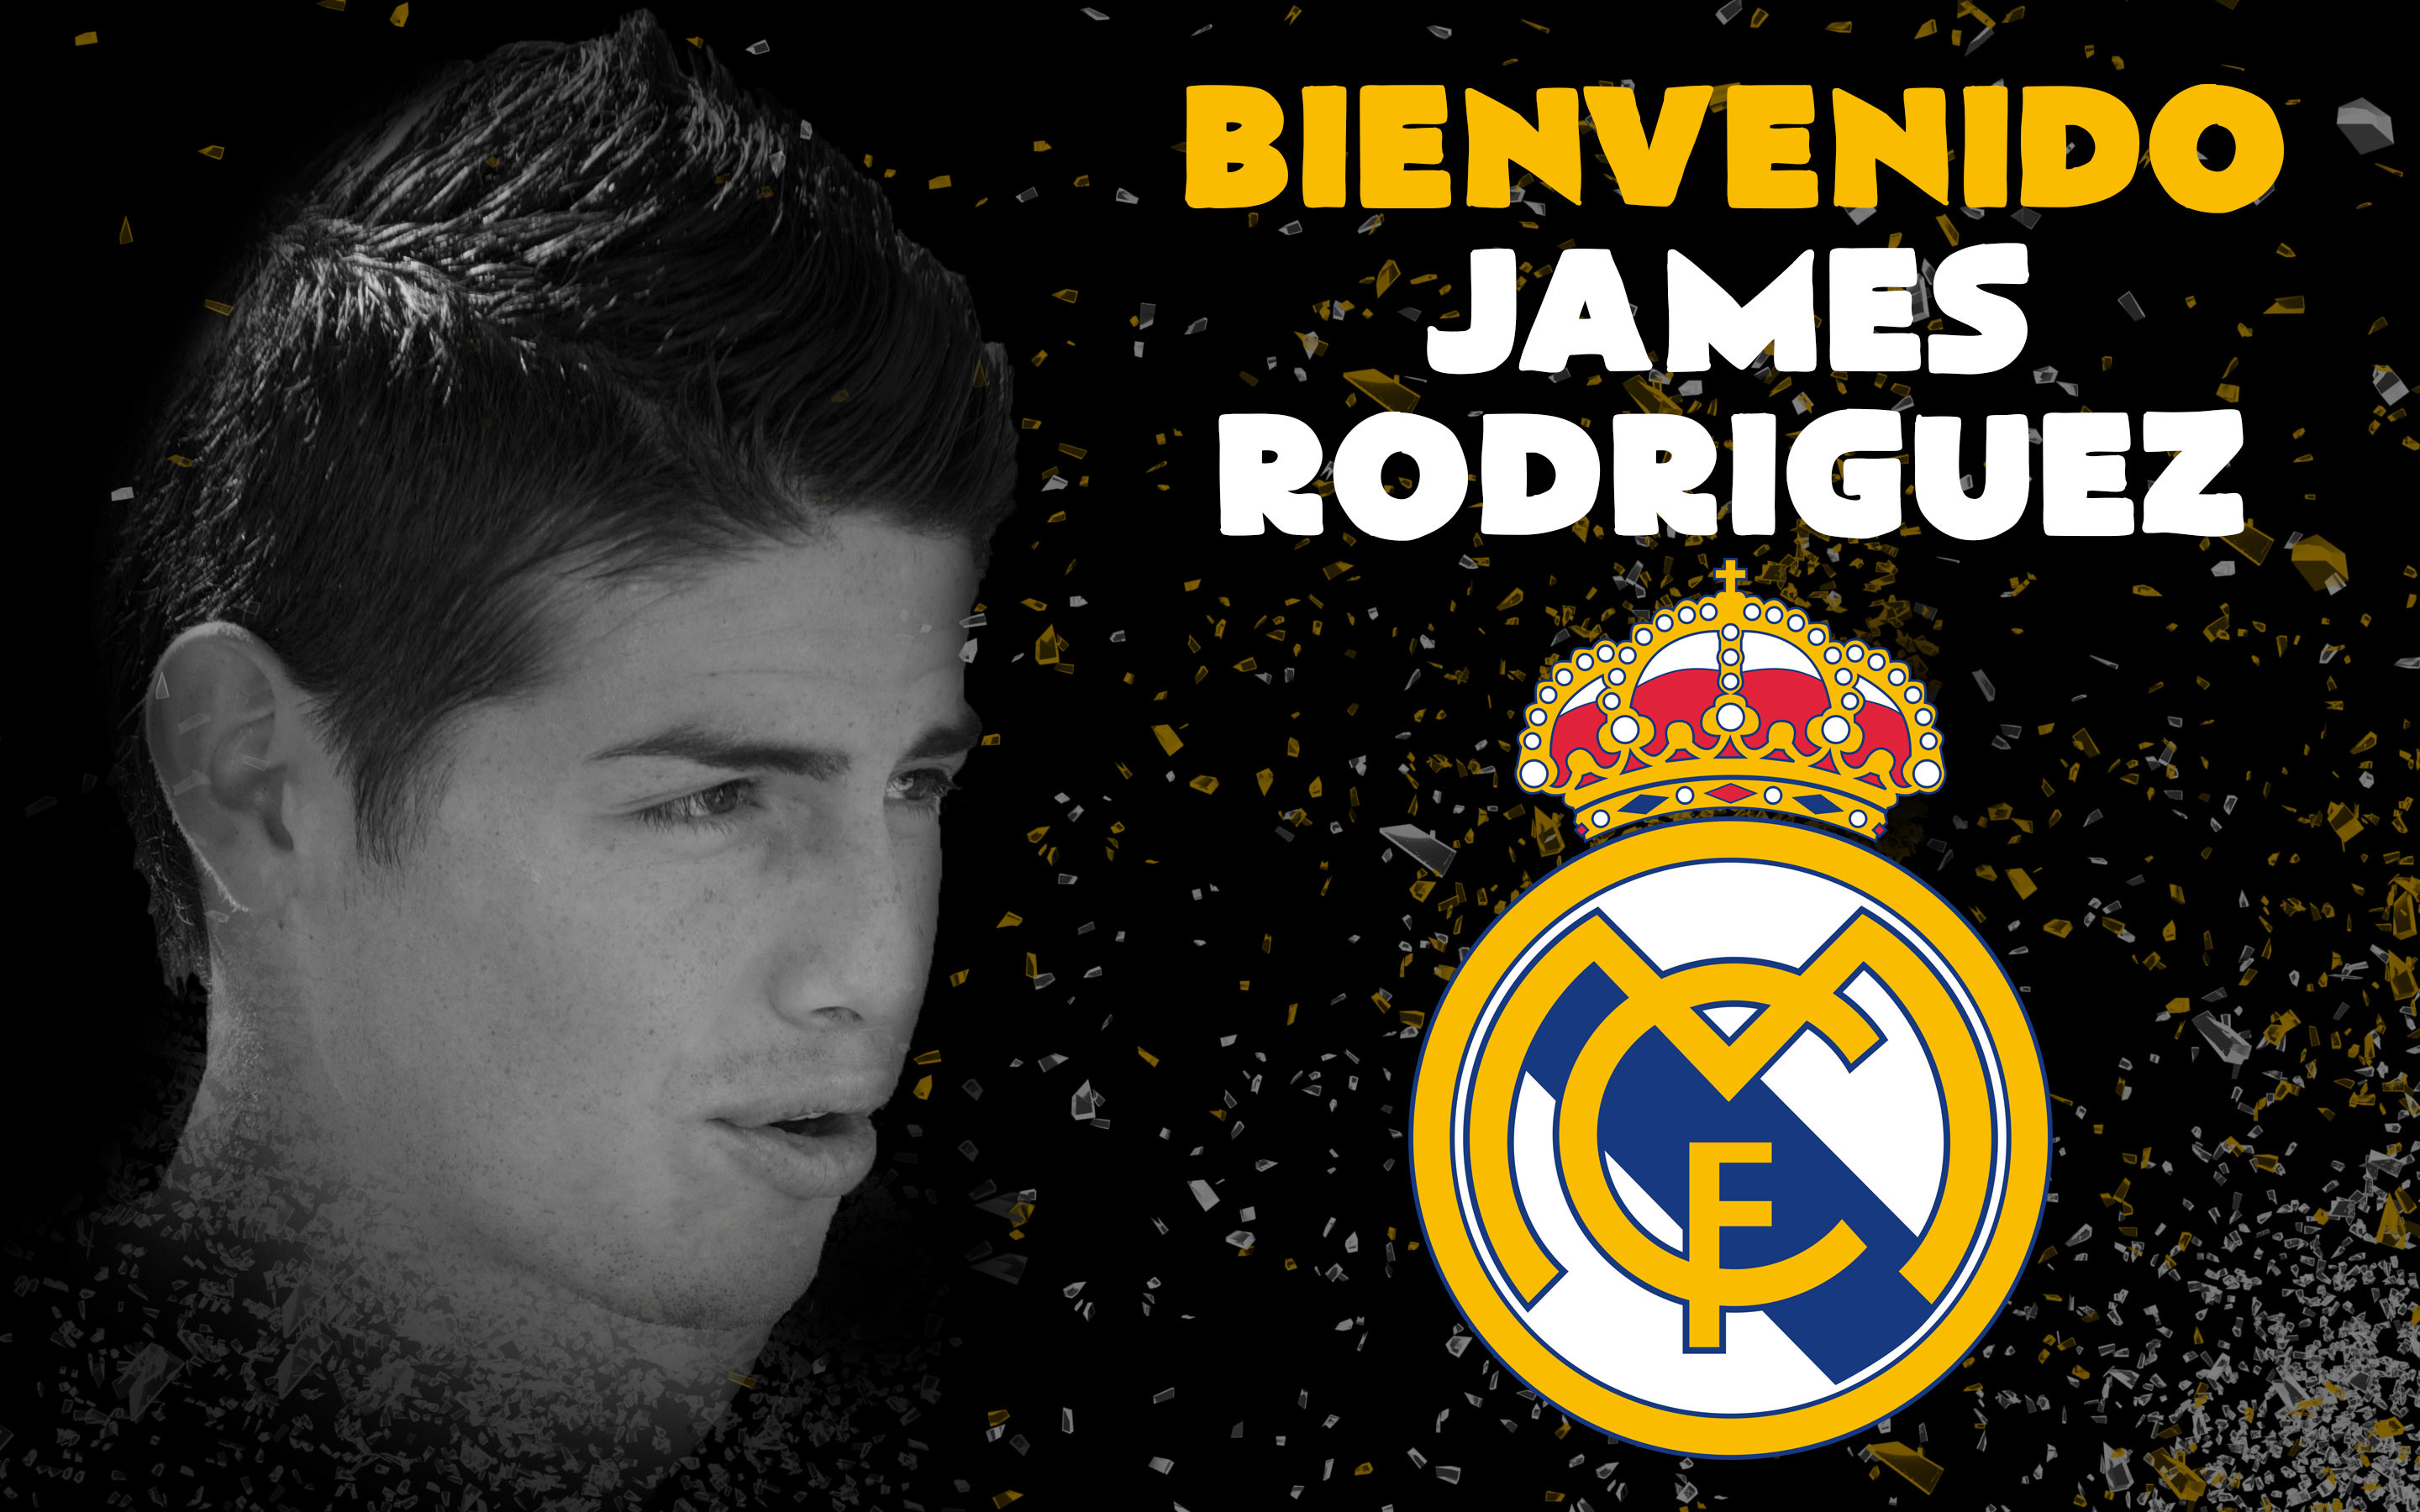 2880x1800 James Rodriguez High Quality Wallpapers Gallery, VPH.4399773